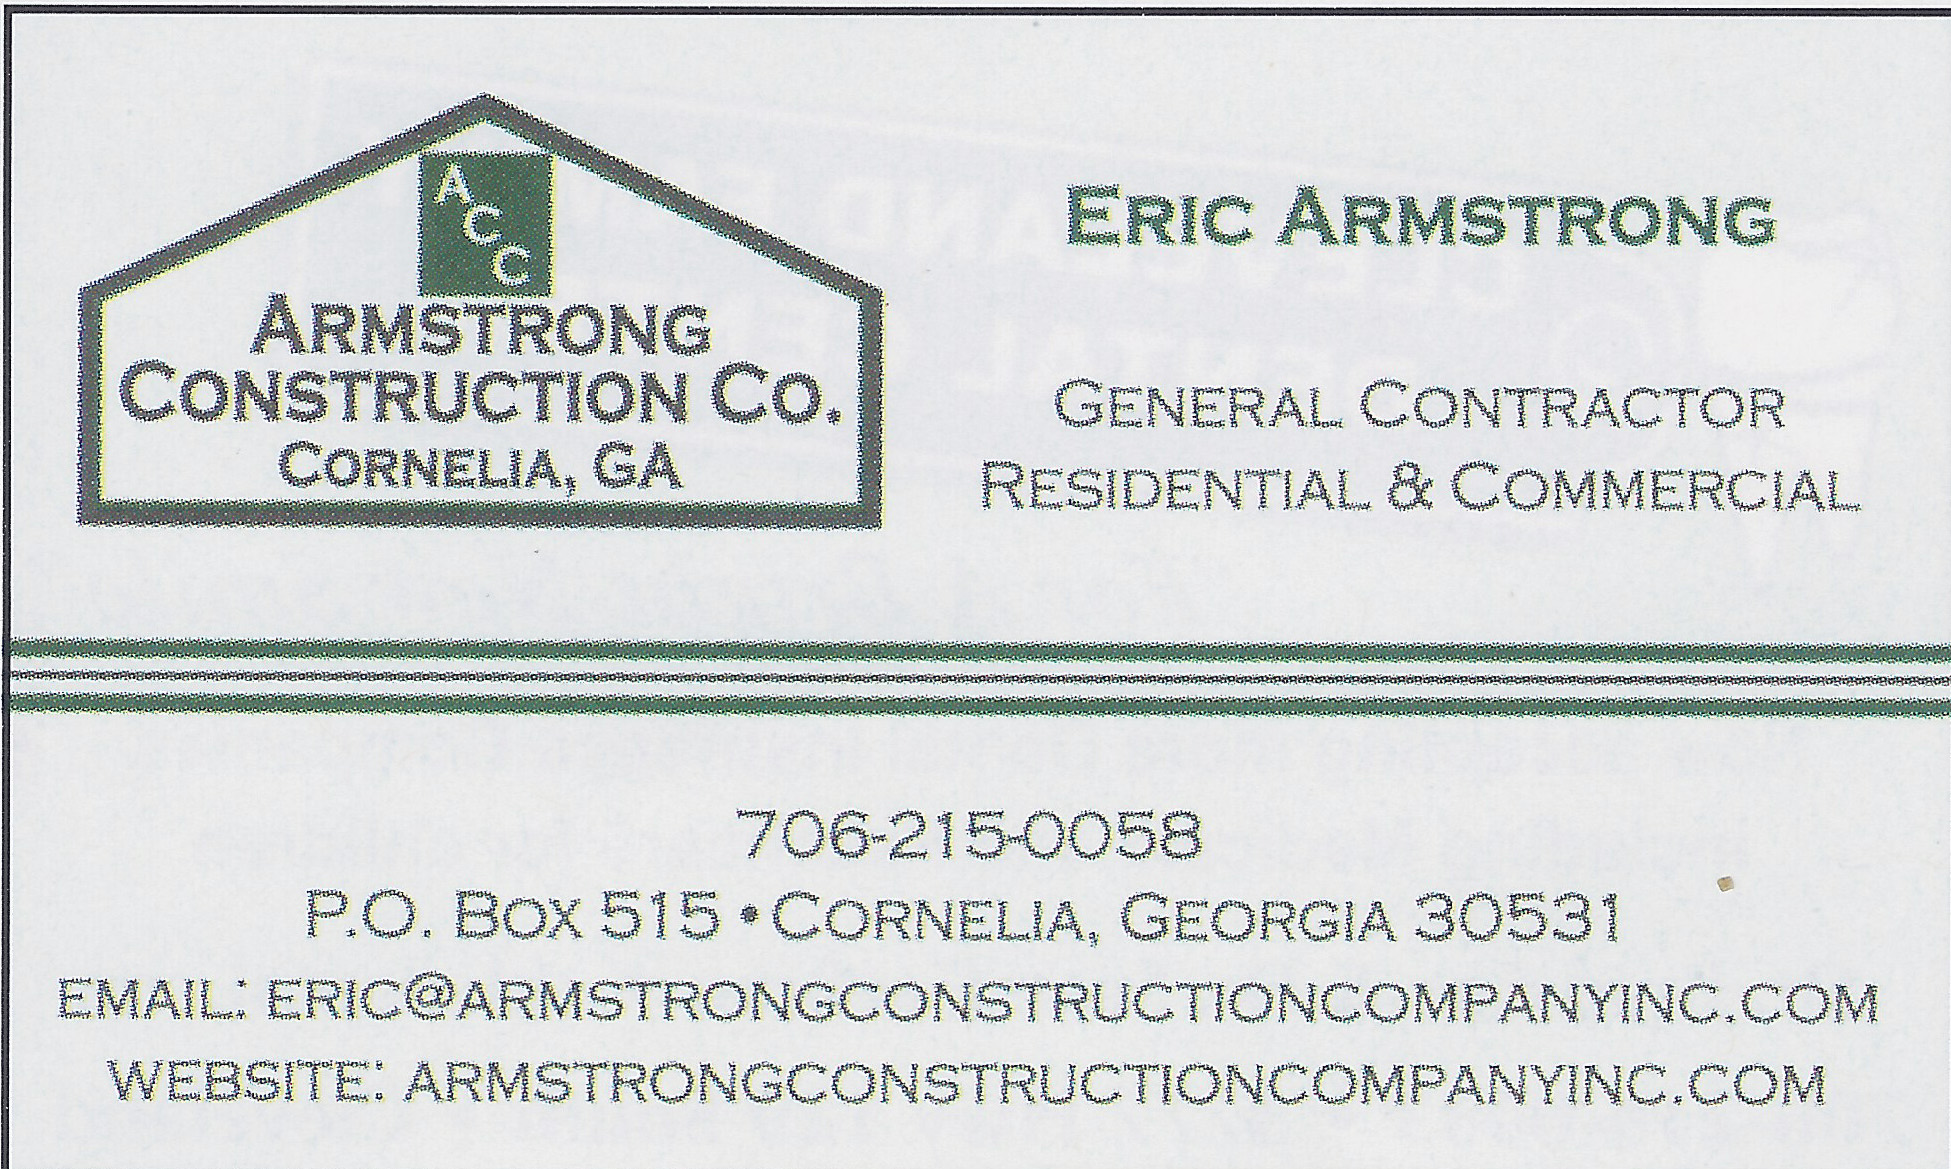 Armstrong Construction Company